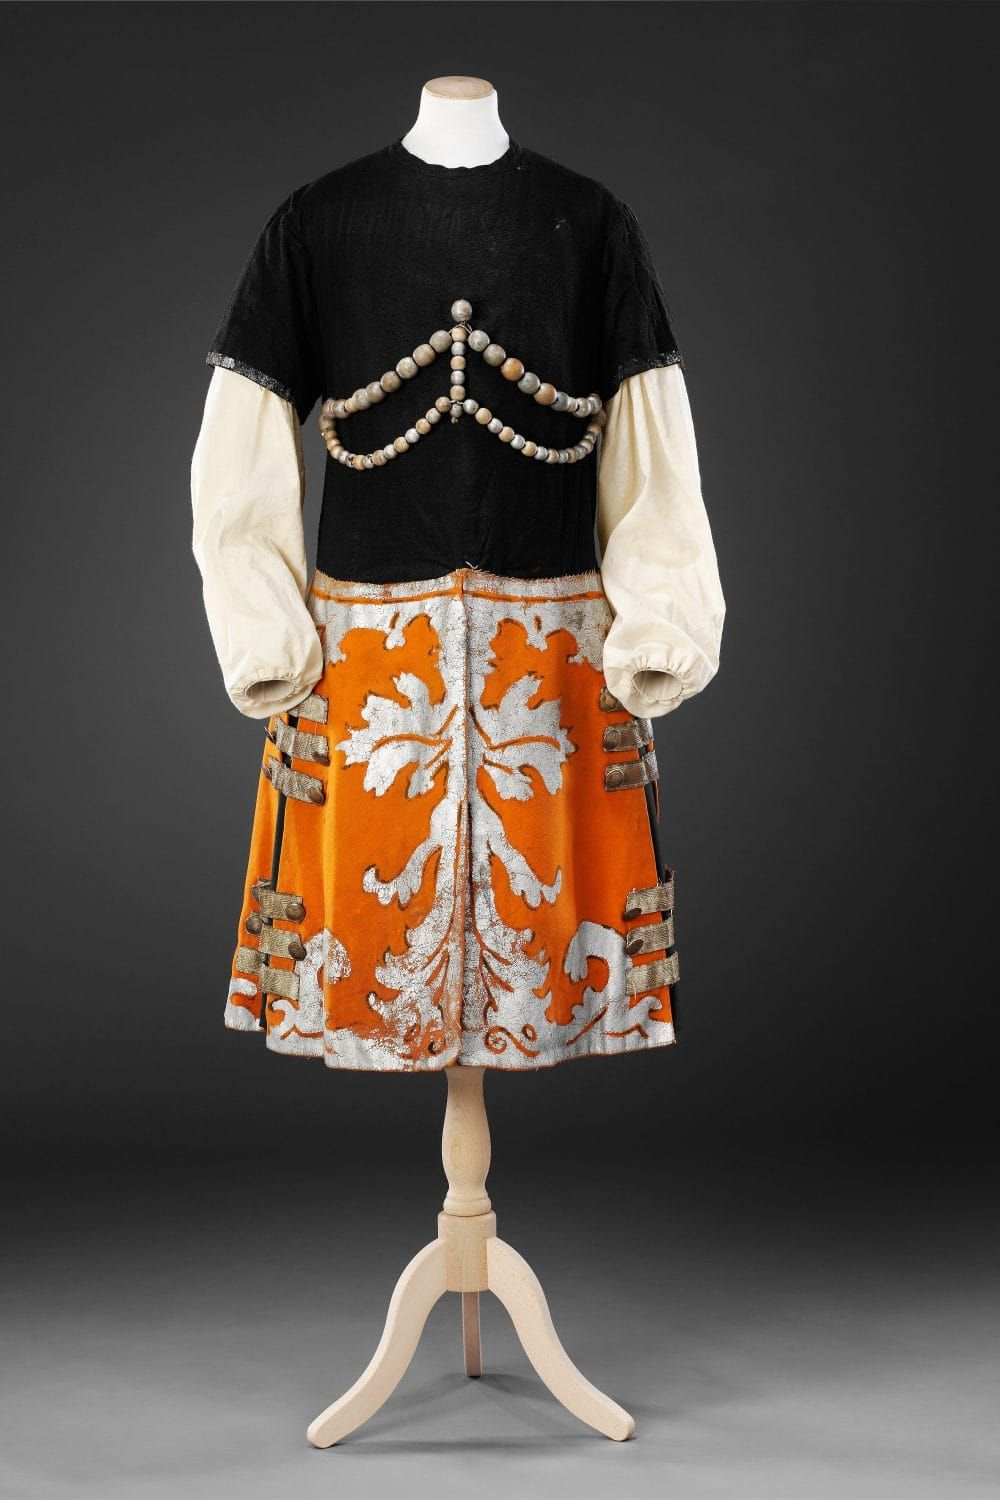 thejohnbrightcollection.co.uk: bright skirt, high neckline top, big sleeves, bright colored skirt.